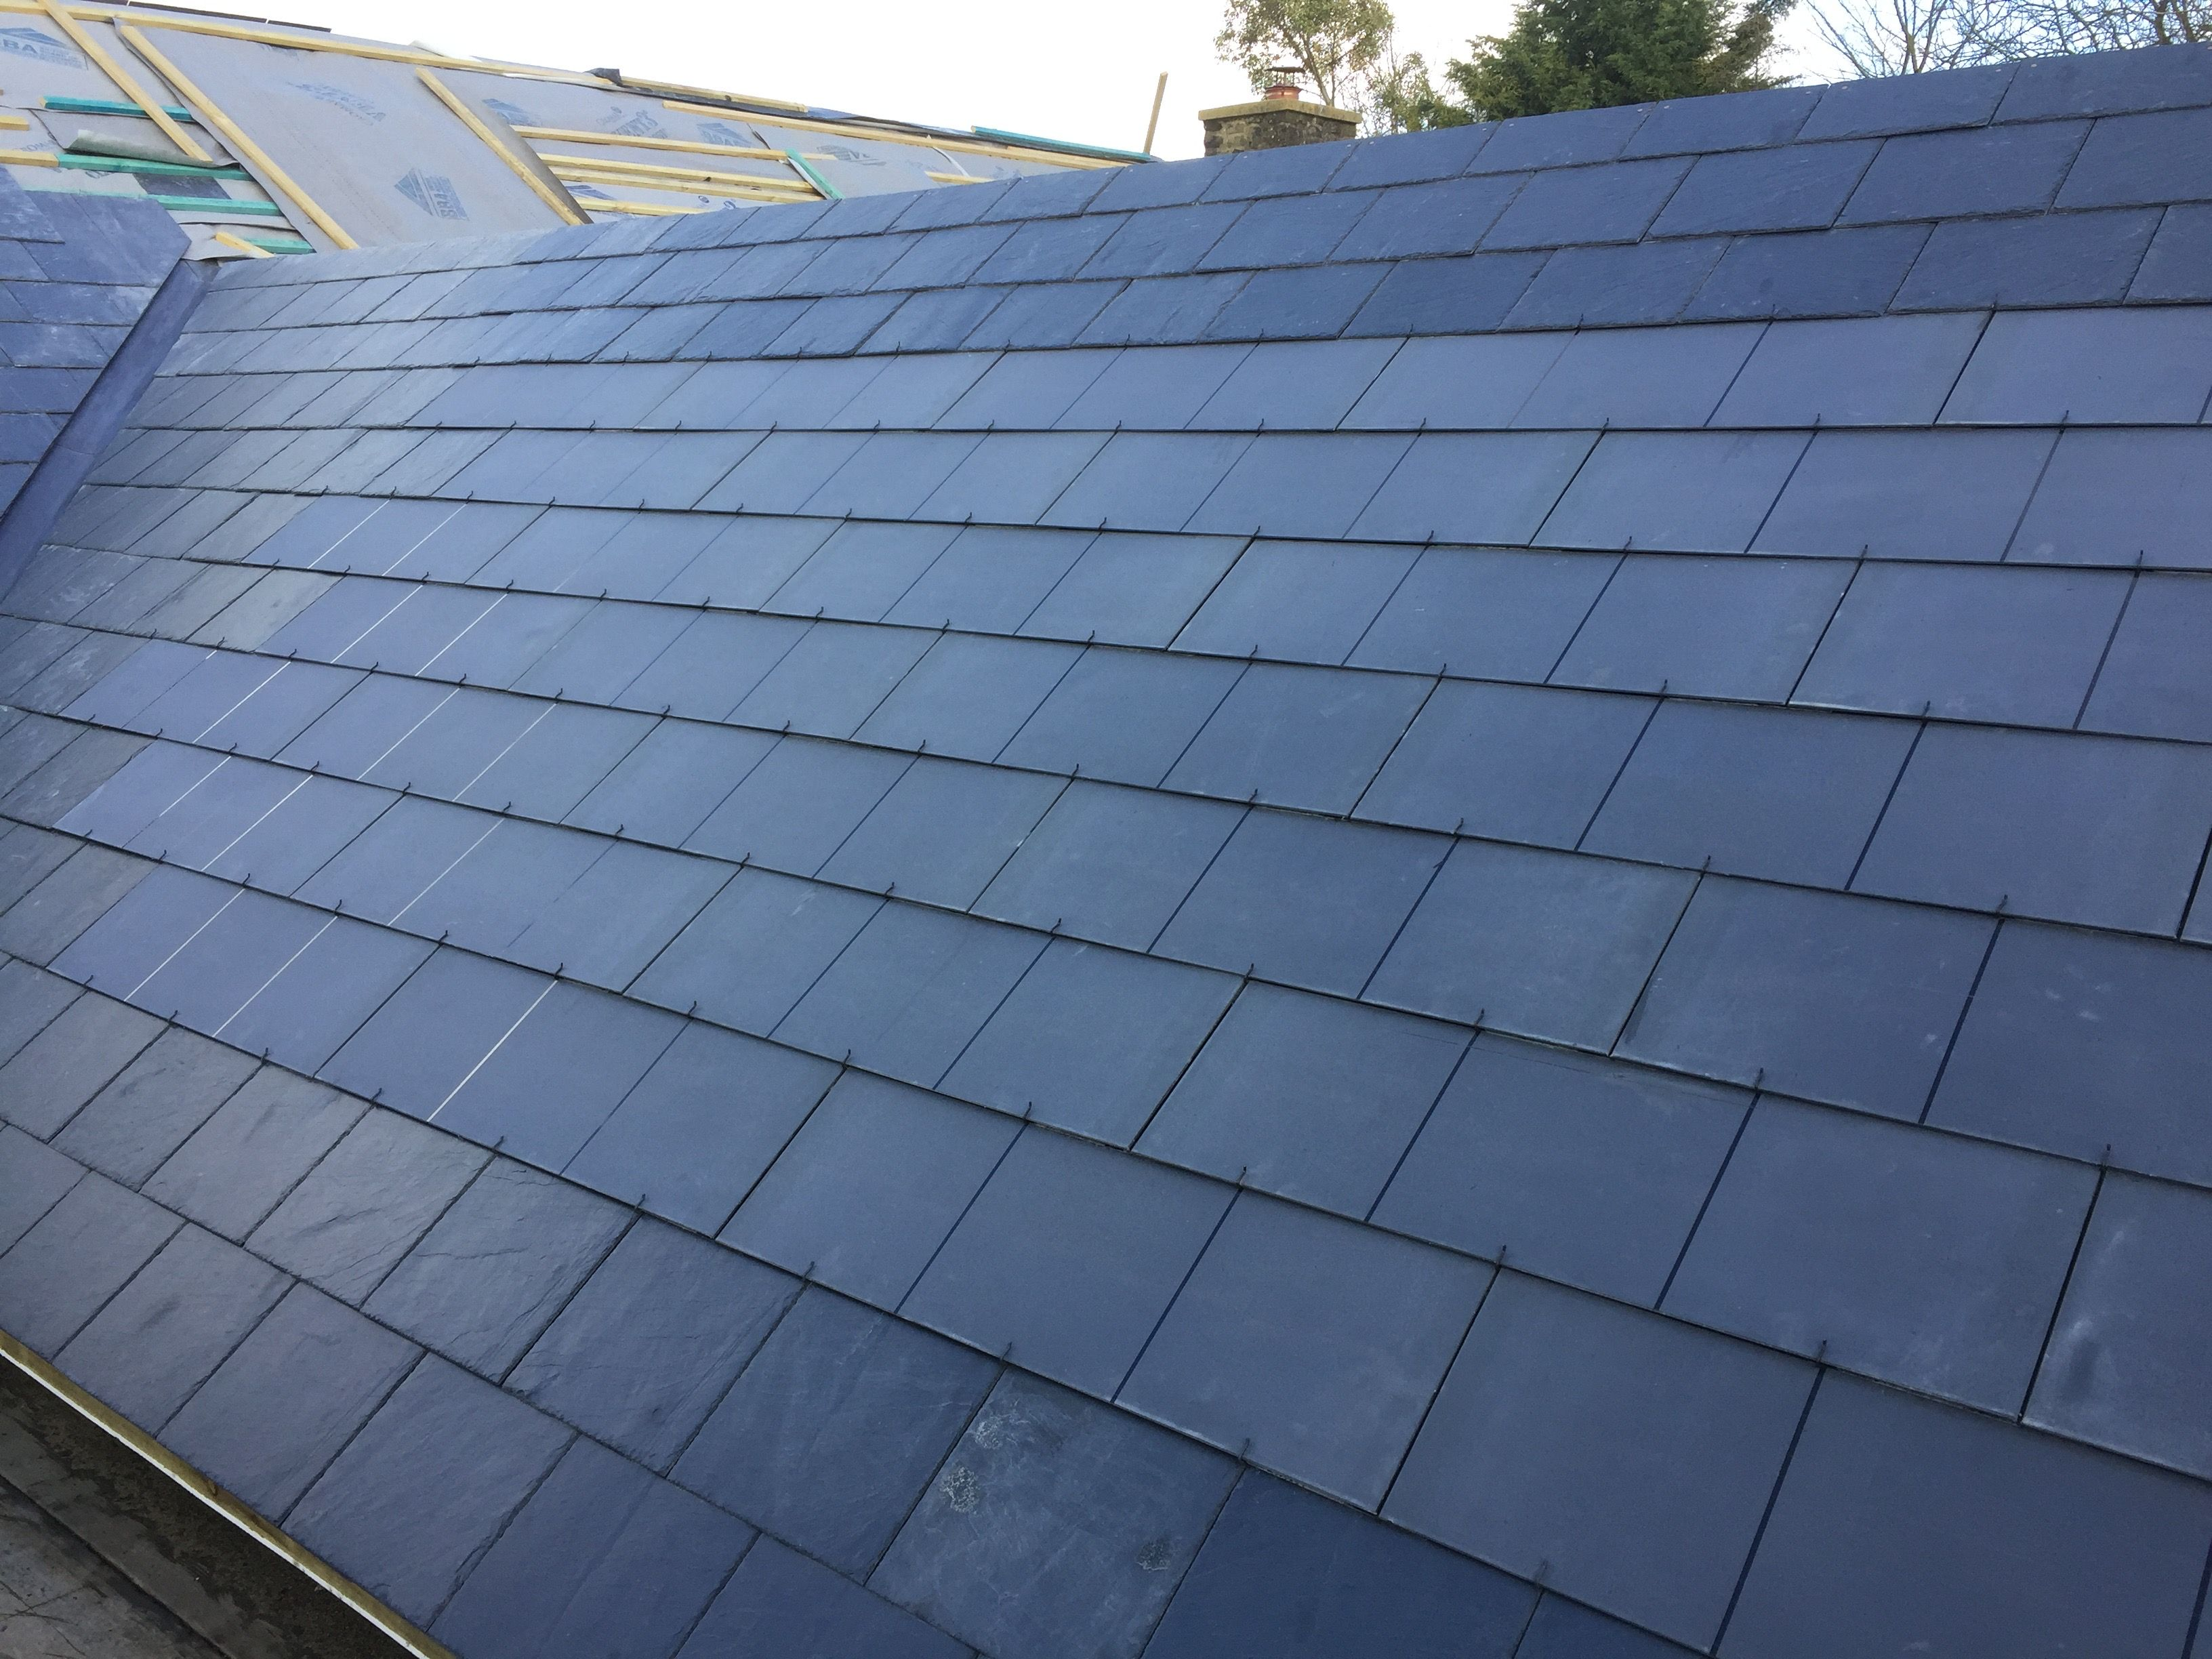 Solar Pv Tiles From Gb Sol Installed By Solar Plants For A Self Build Home Solar Tiles Solar Panels Solar